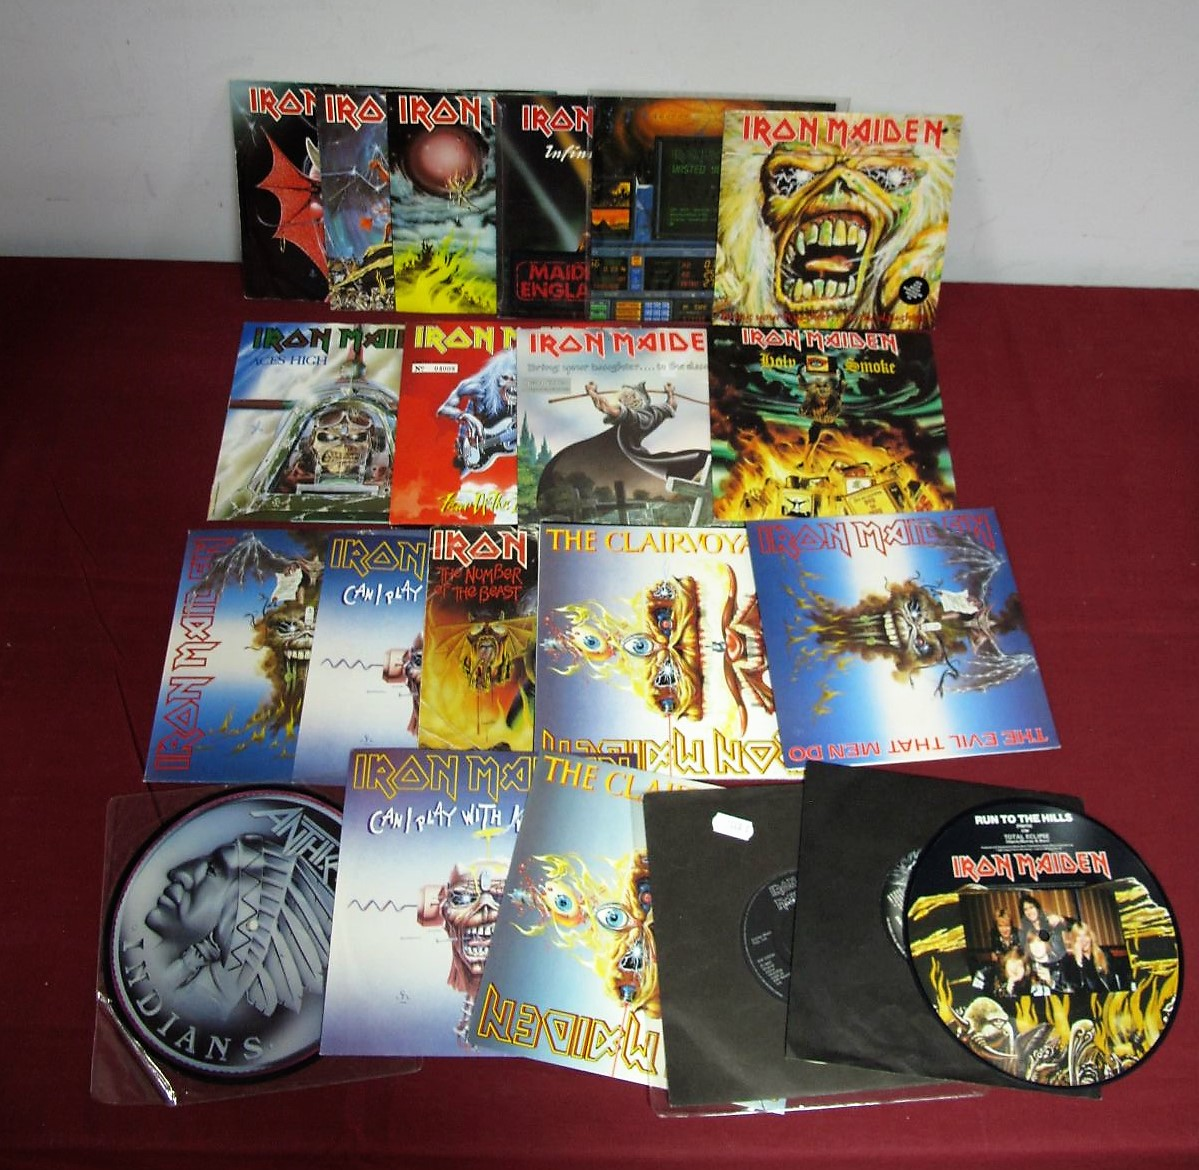 "Lot 28 - Iron Maiden - A Good Collection of 20 Iron Maiden 7"" Singles - to include Can I Play With Madness,"